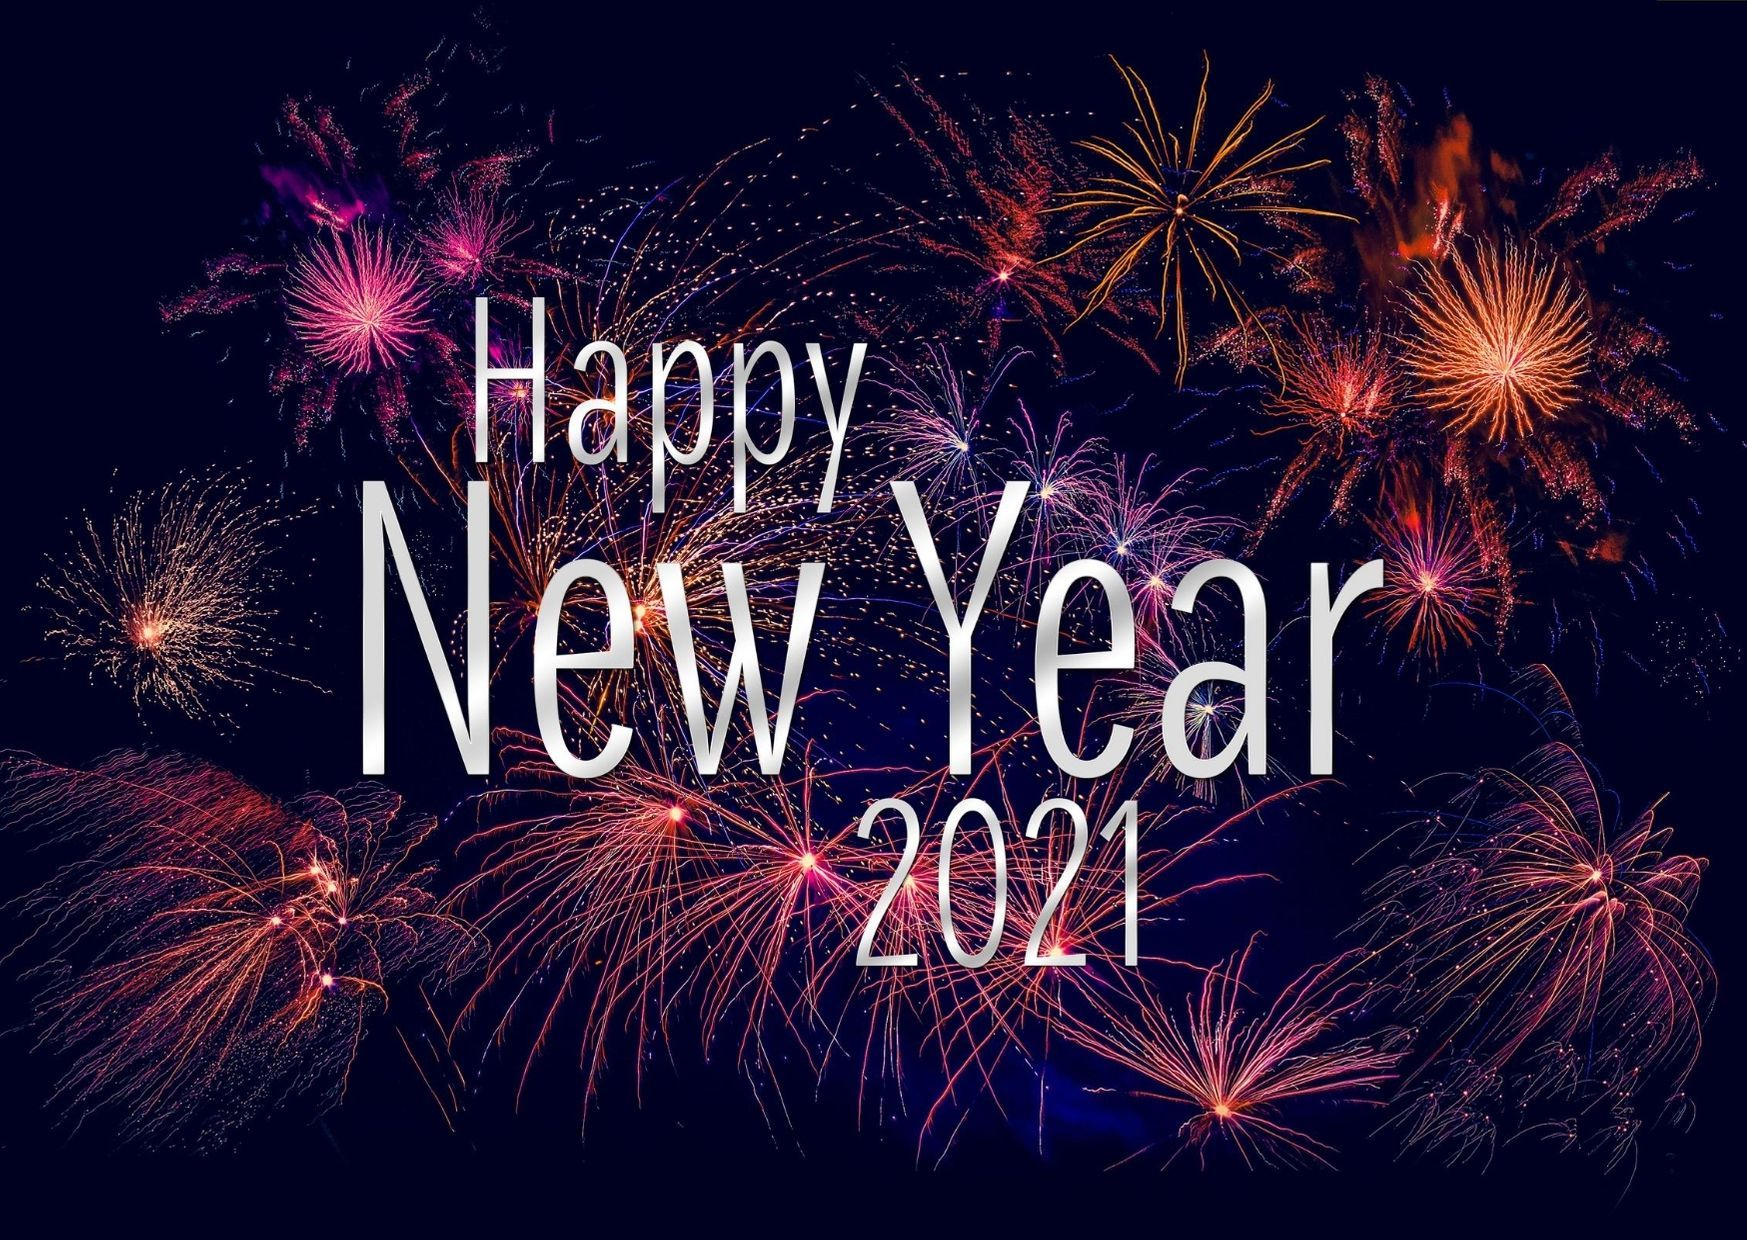 Happy New Year 2021 Images in 2020 New year images